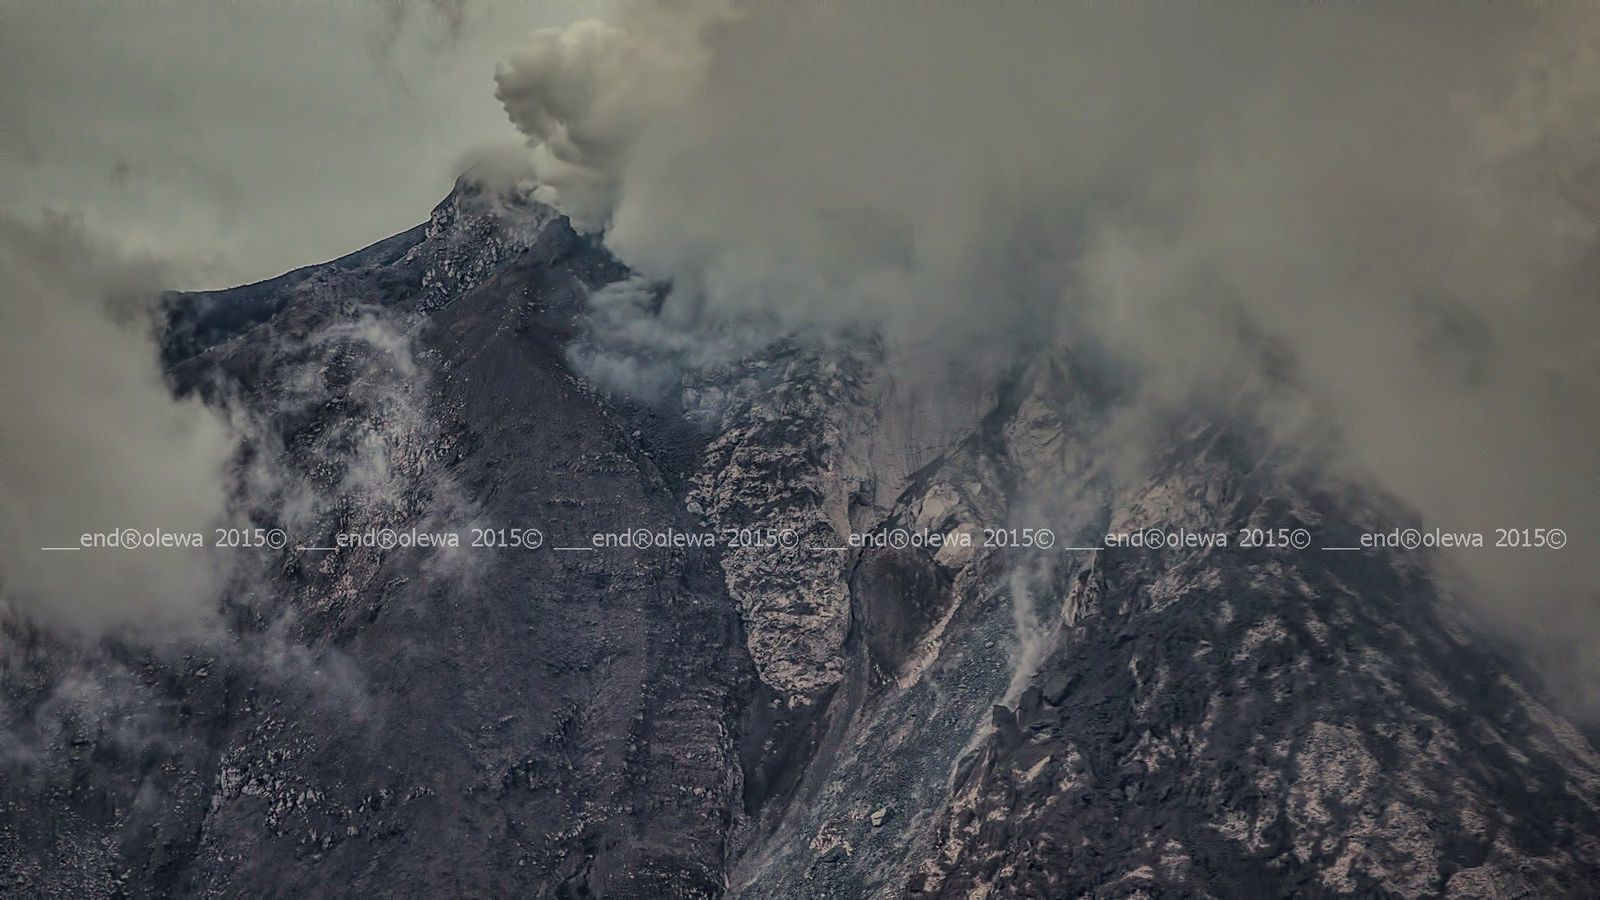 The top of Sinabung, the southern slope on 07.19.2015 / 5:45 p.m. -photo endrolew@